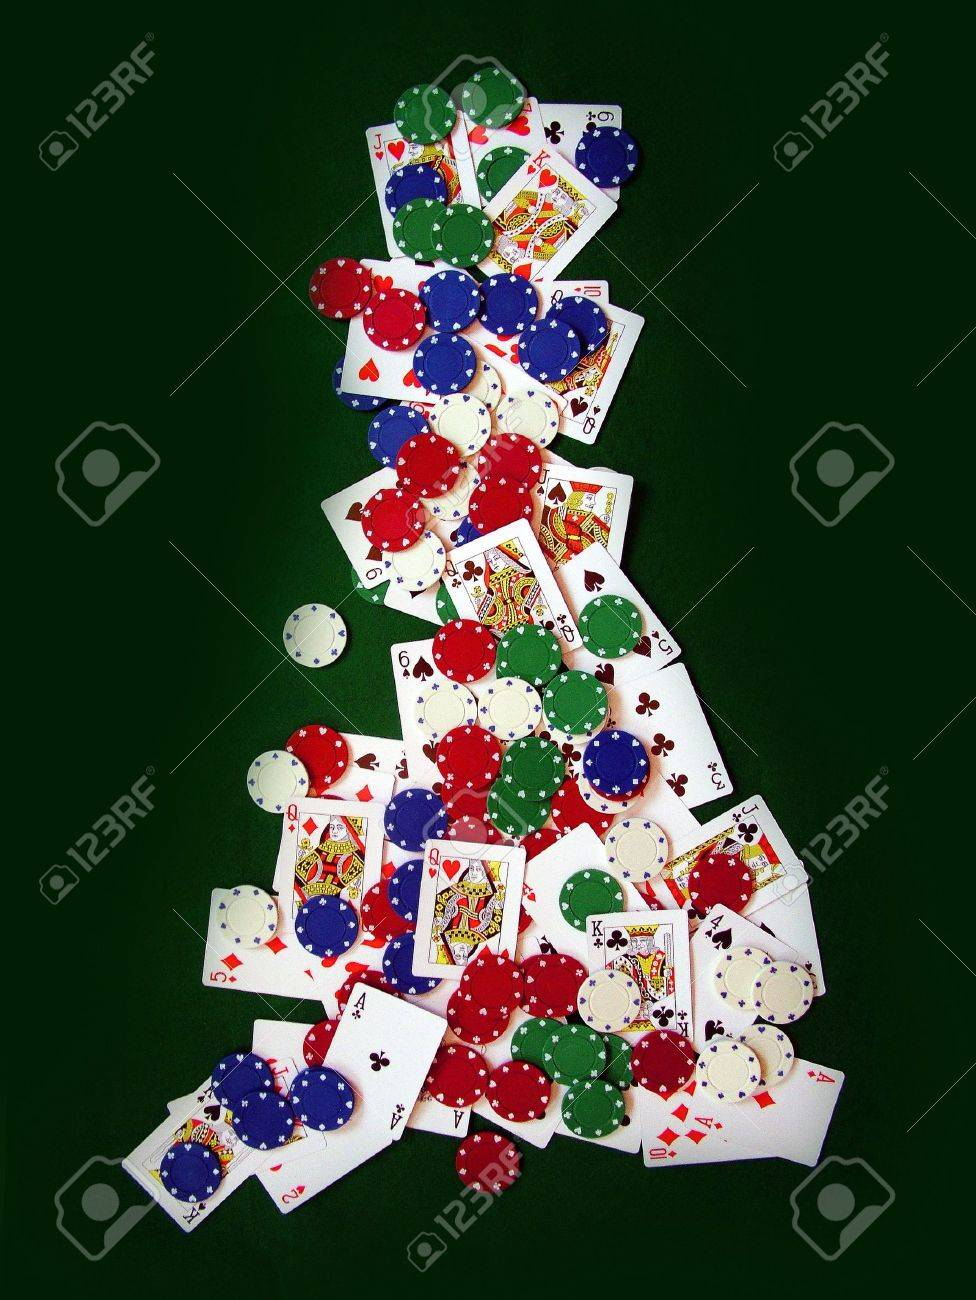 Playing Cards and Poker Chips in Shape of United Kingdom Stock Photo - 377786